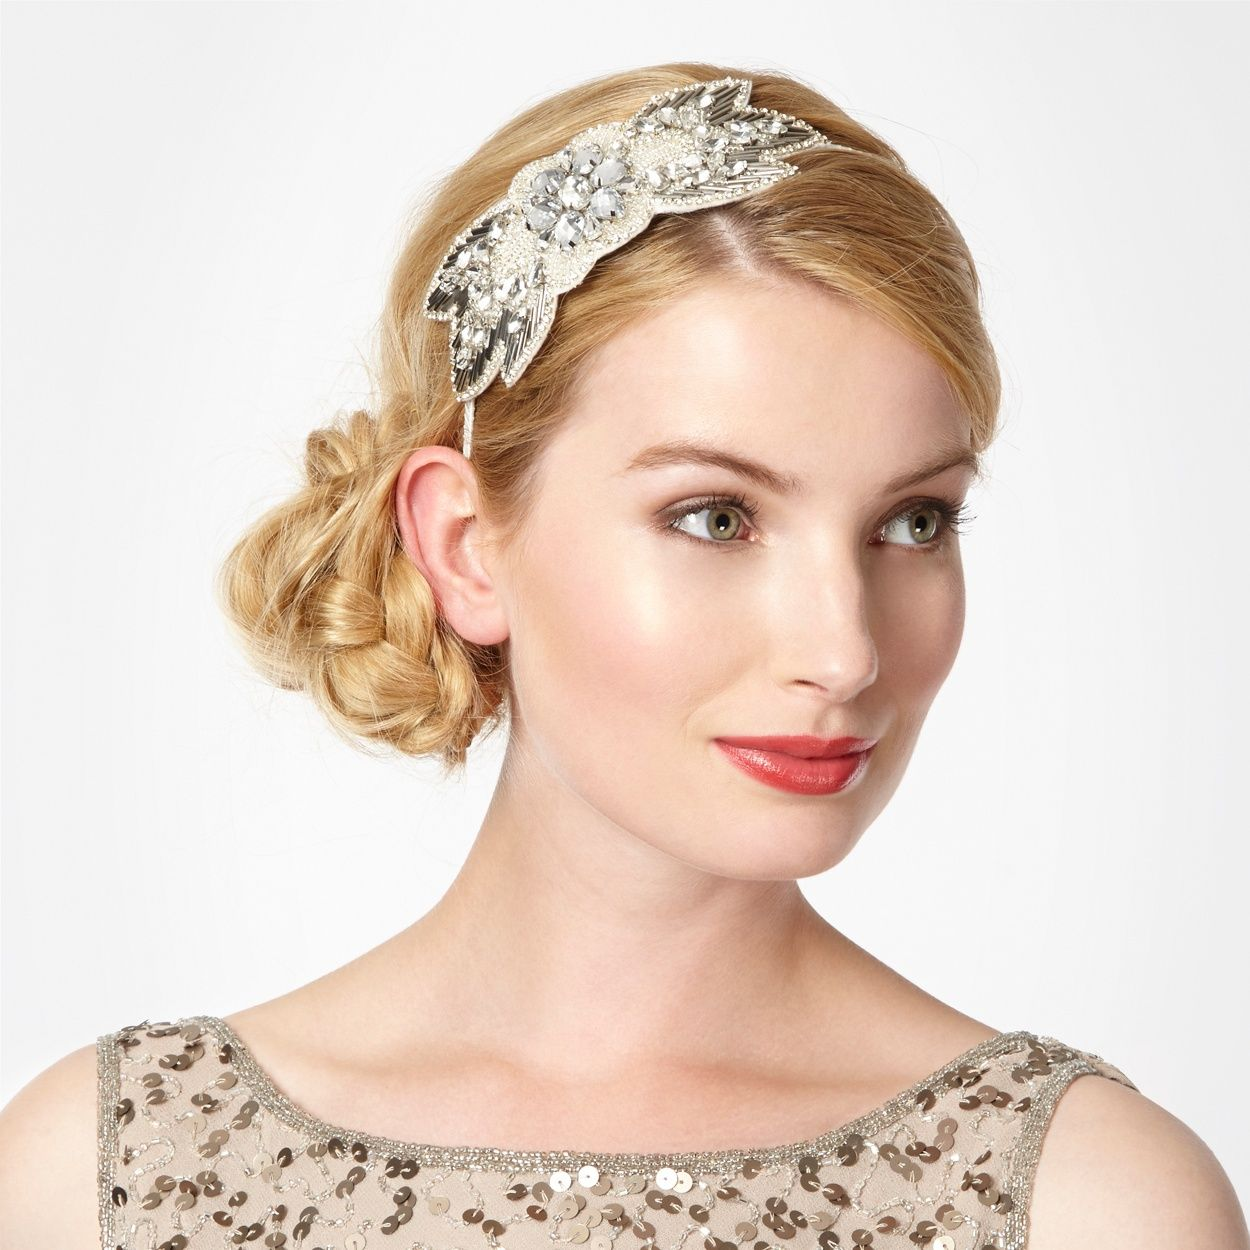 This silver embellished headband would look great with a vintage